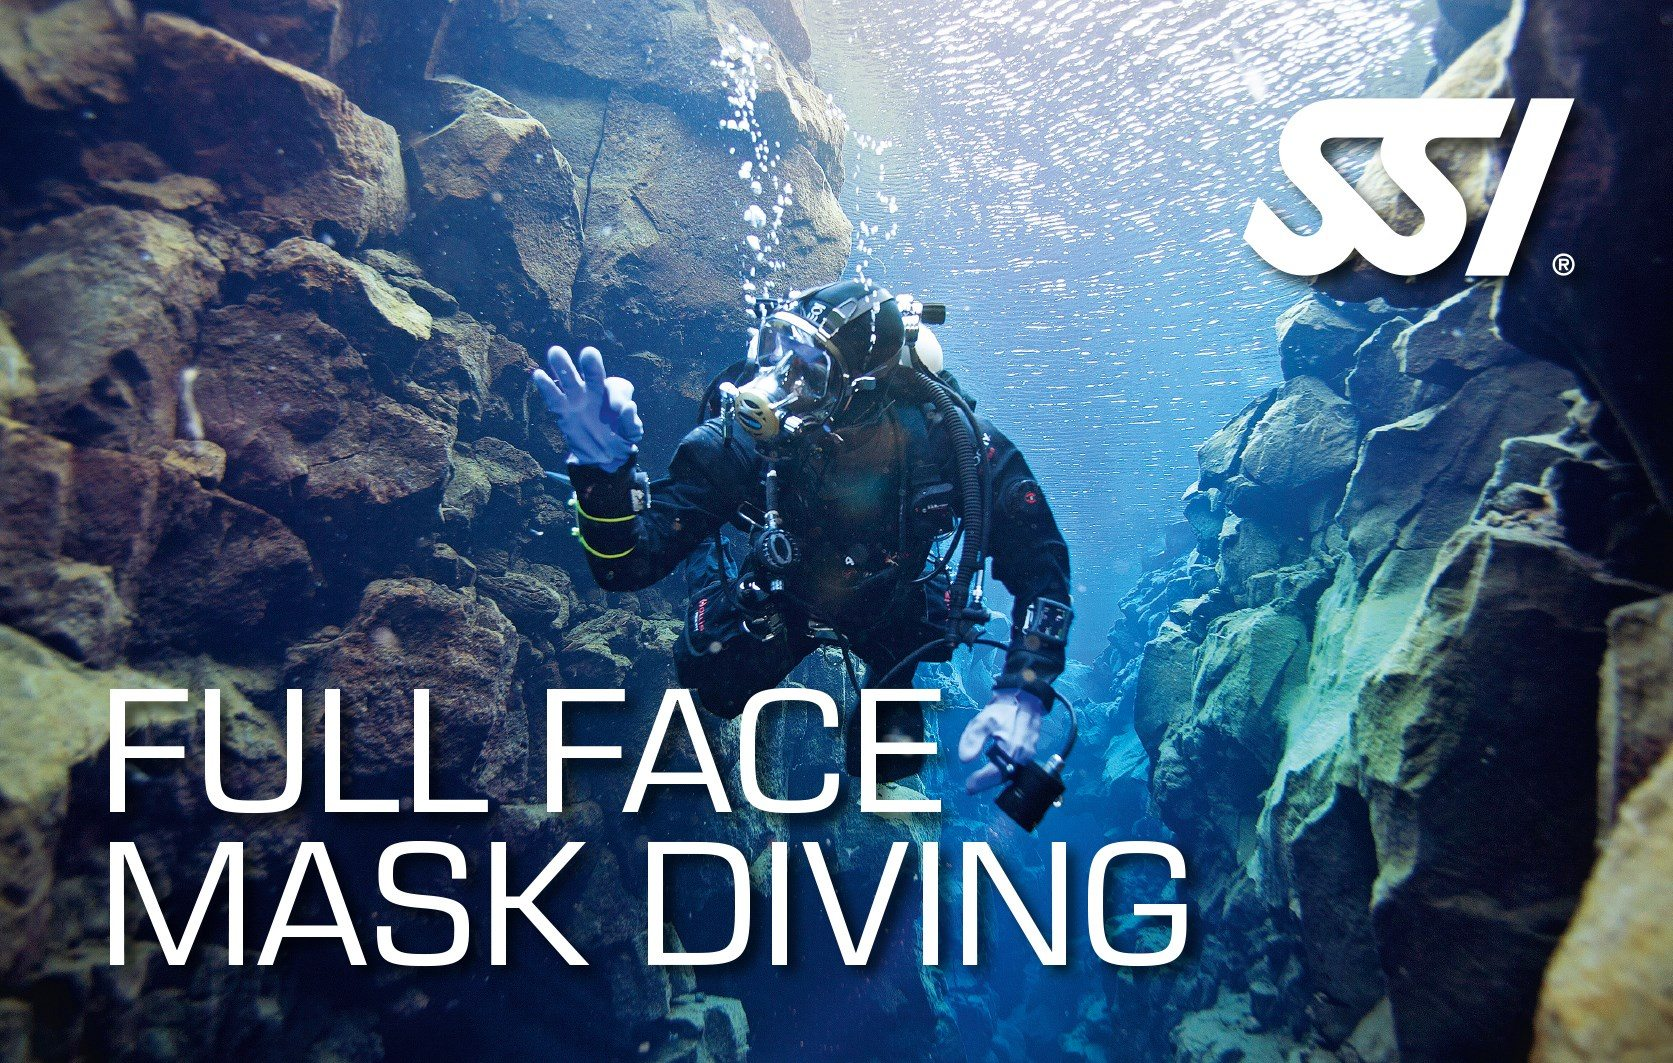 SSI Full Face Mask Diving | SSI Full Face Mask Diving Course | Full Face Mask Diving | Specialty Course | Diving Course | Eko Divers